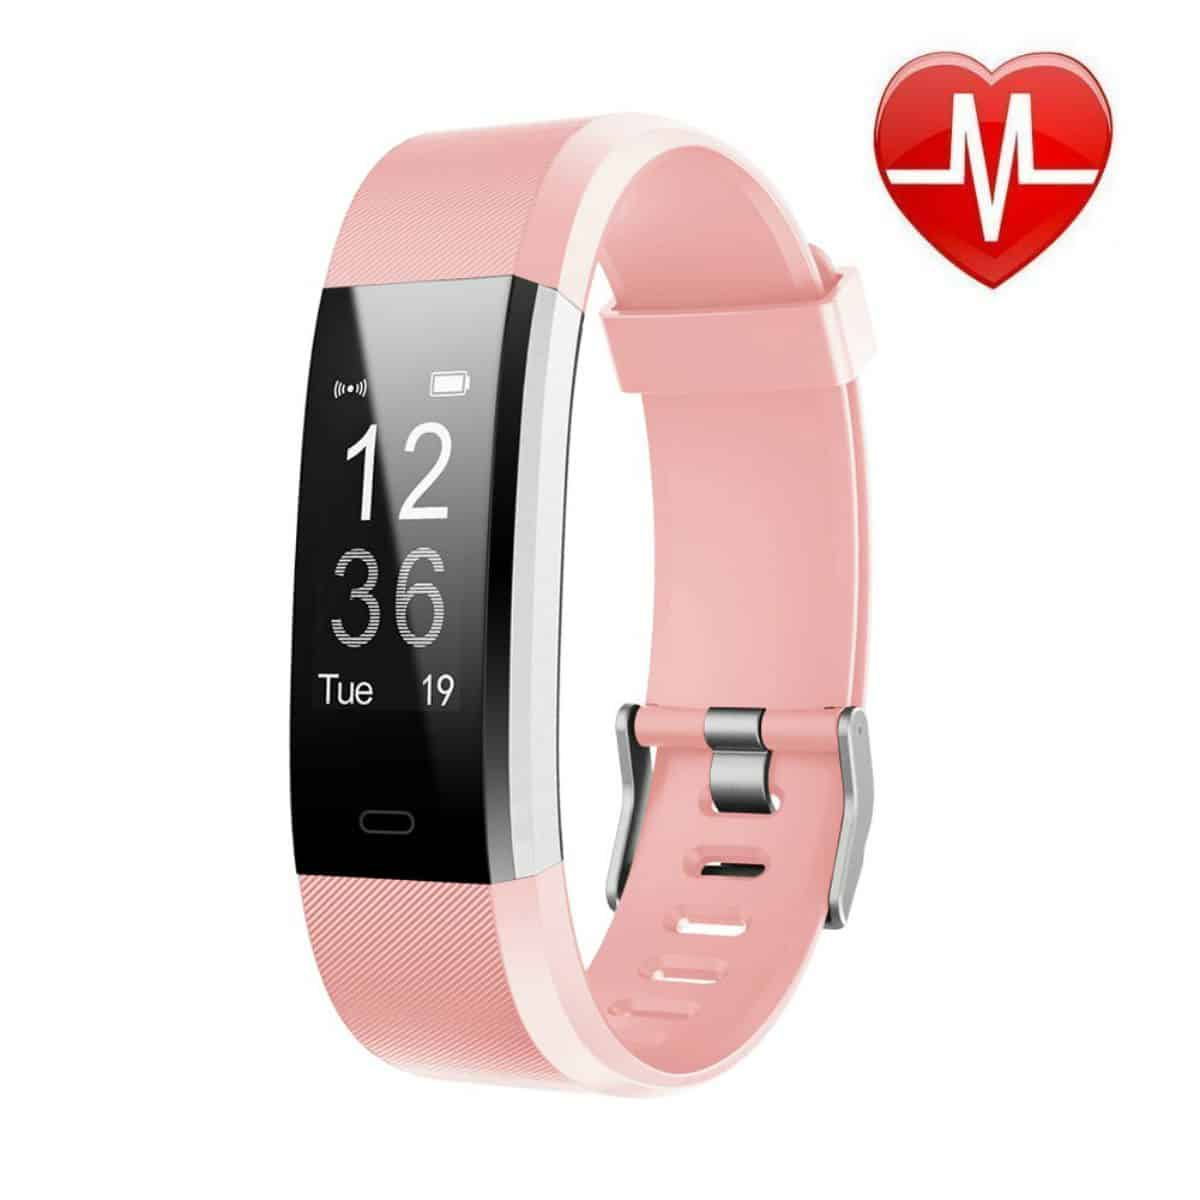 Letscom Fitness Tracker | Best GPS-Enabled Kids Watches | Child Safety For The Modern Family